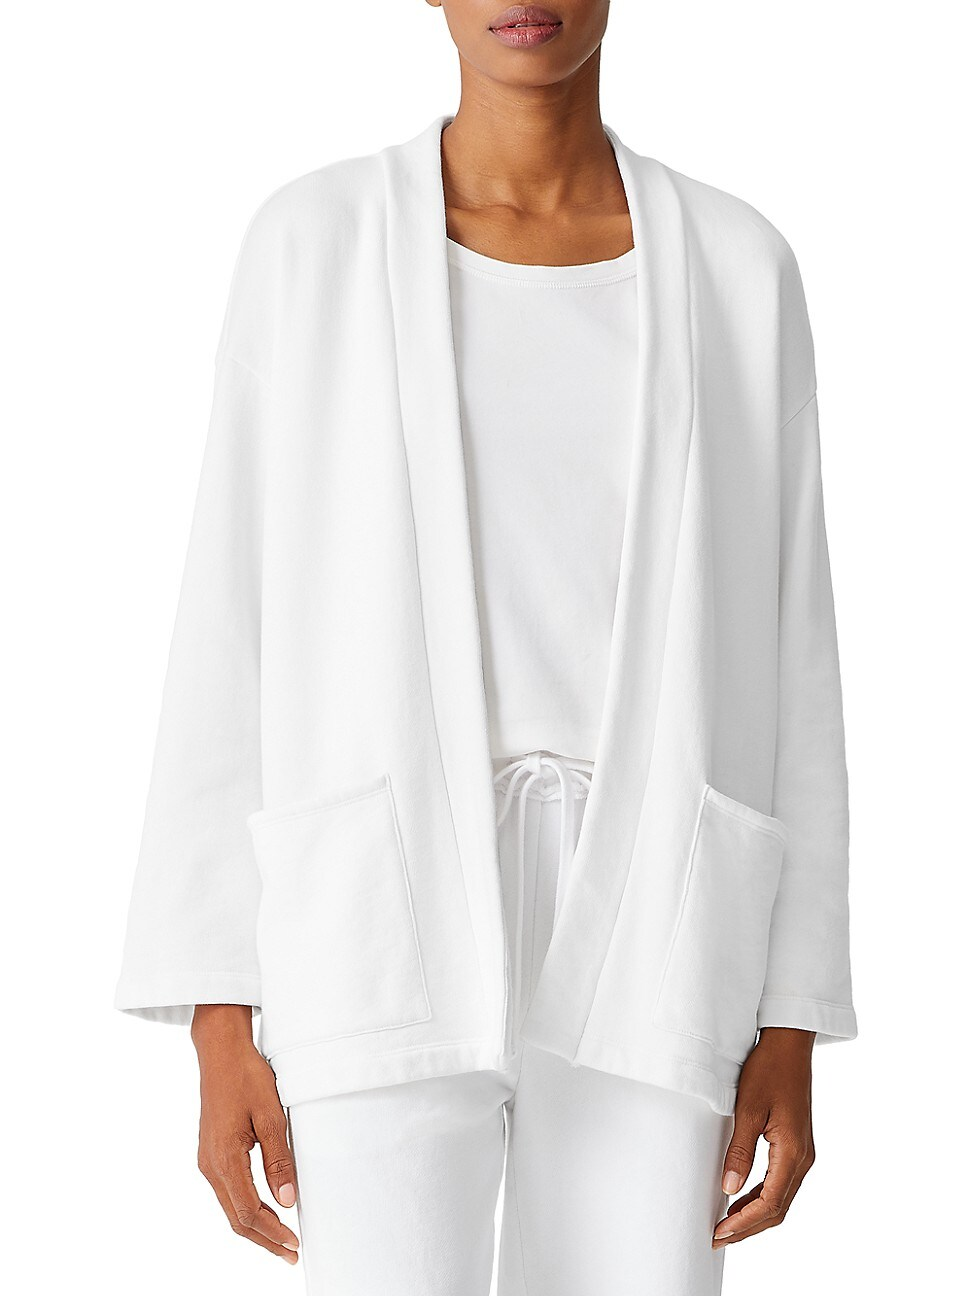 Eileen Fisher WOMEN'S BOXY OPEN KNIT JACKET